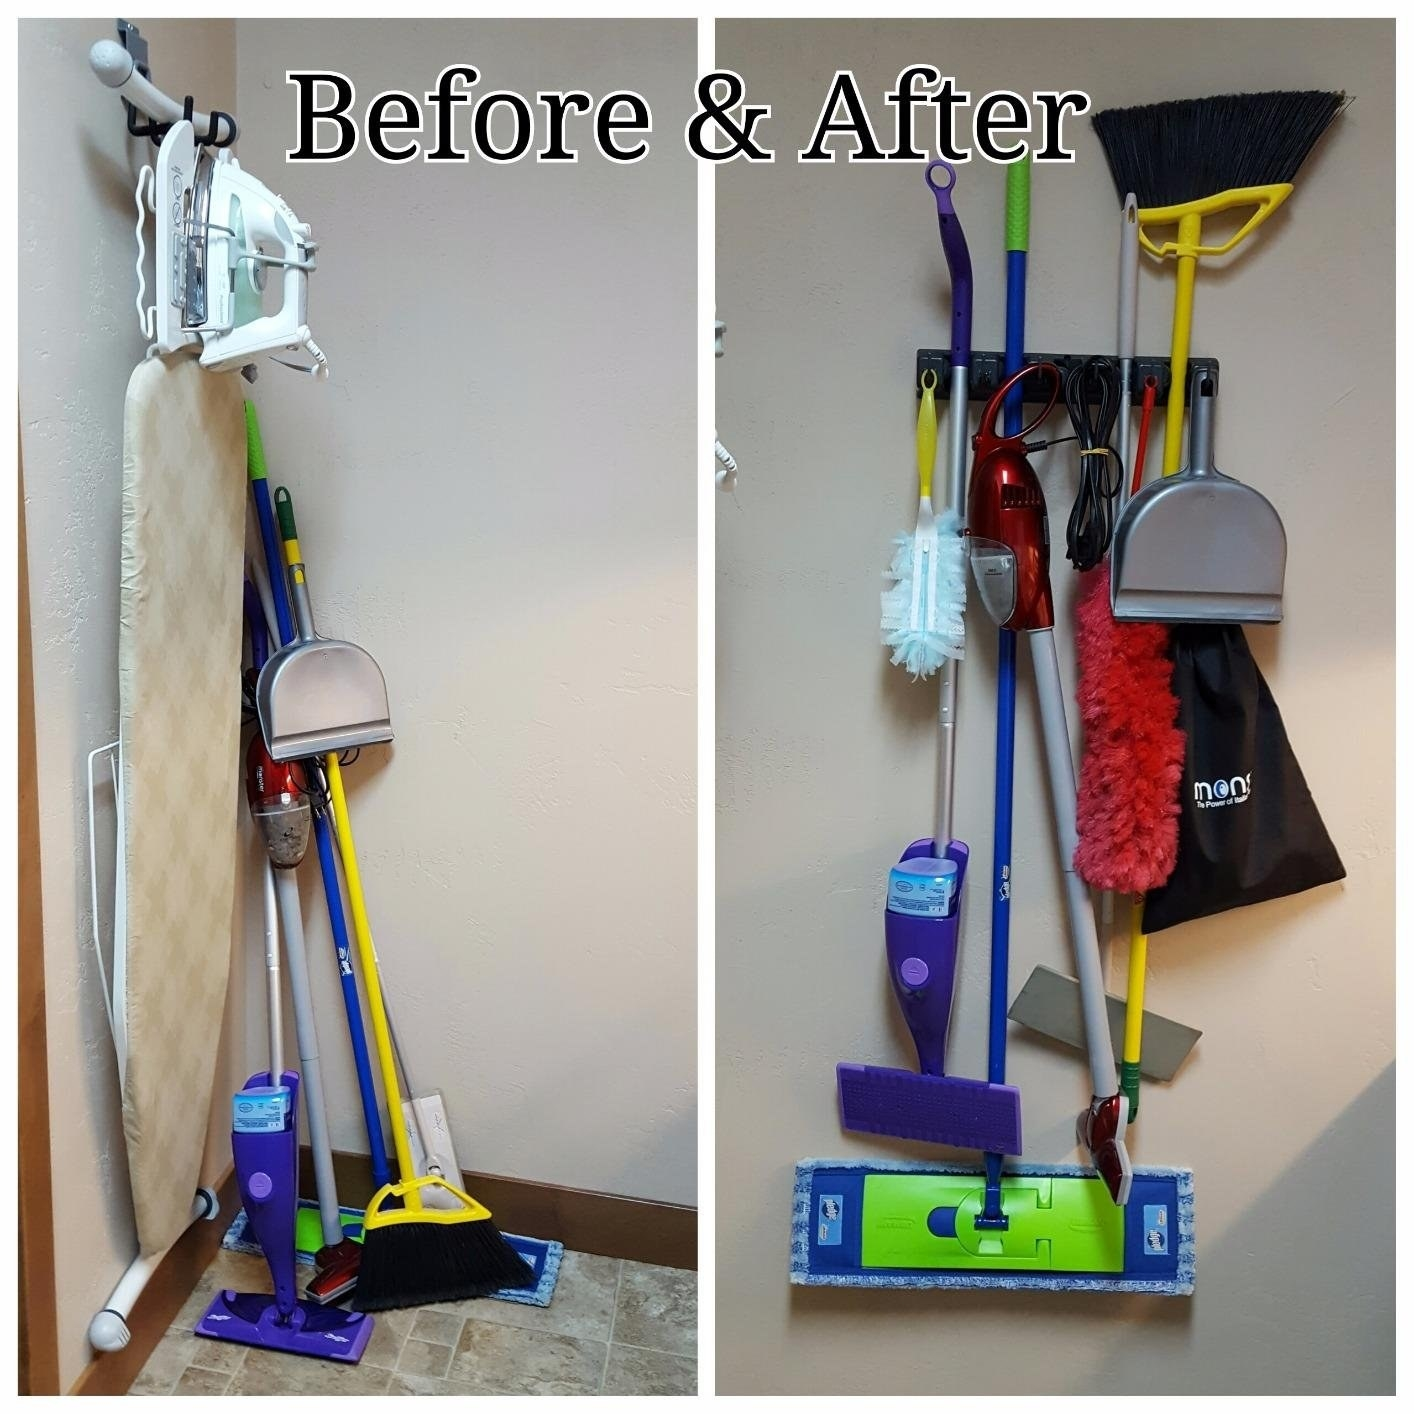 Reviewer's before-and-after of their broom and appliances on the floor, then held up by this organizer